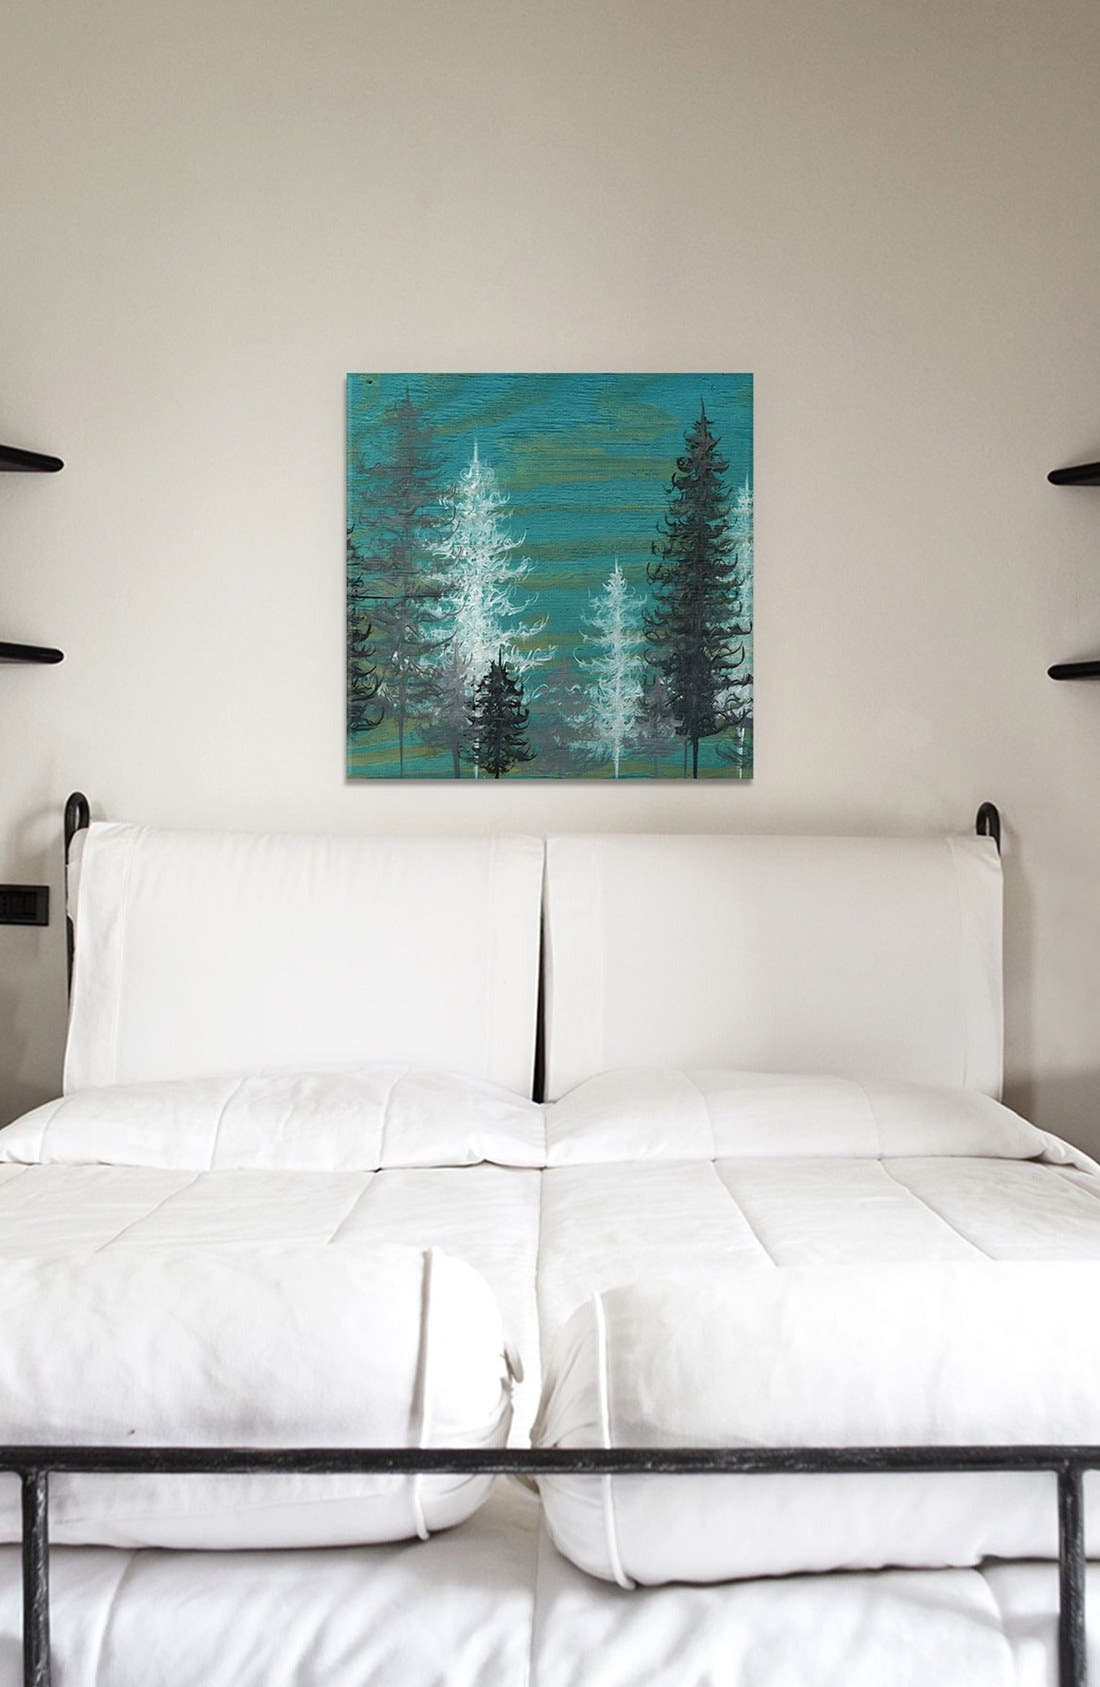 'Teal Trees' Giclée Print Canvas Art,                             Alternate thumbnail 2, color,                             Green